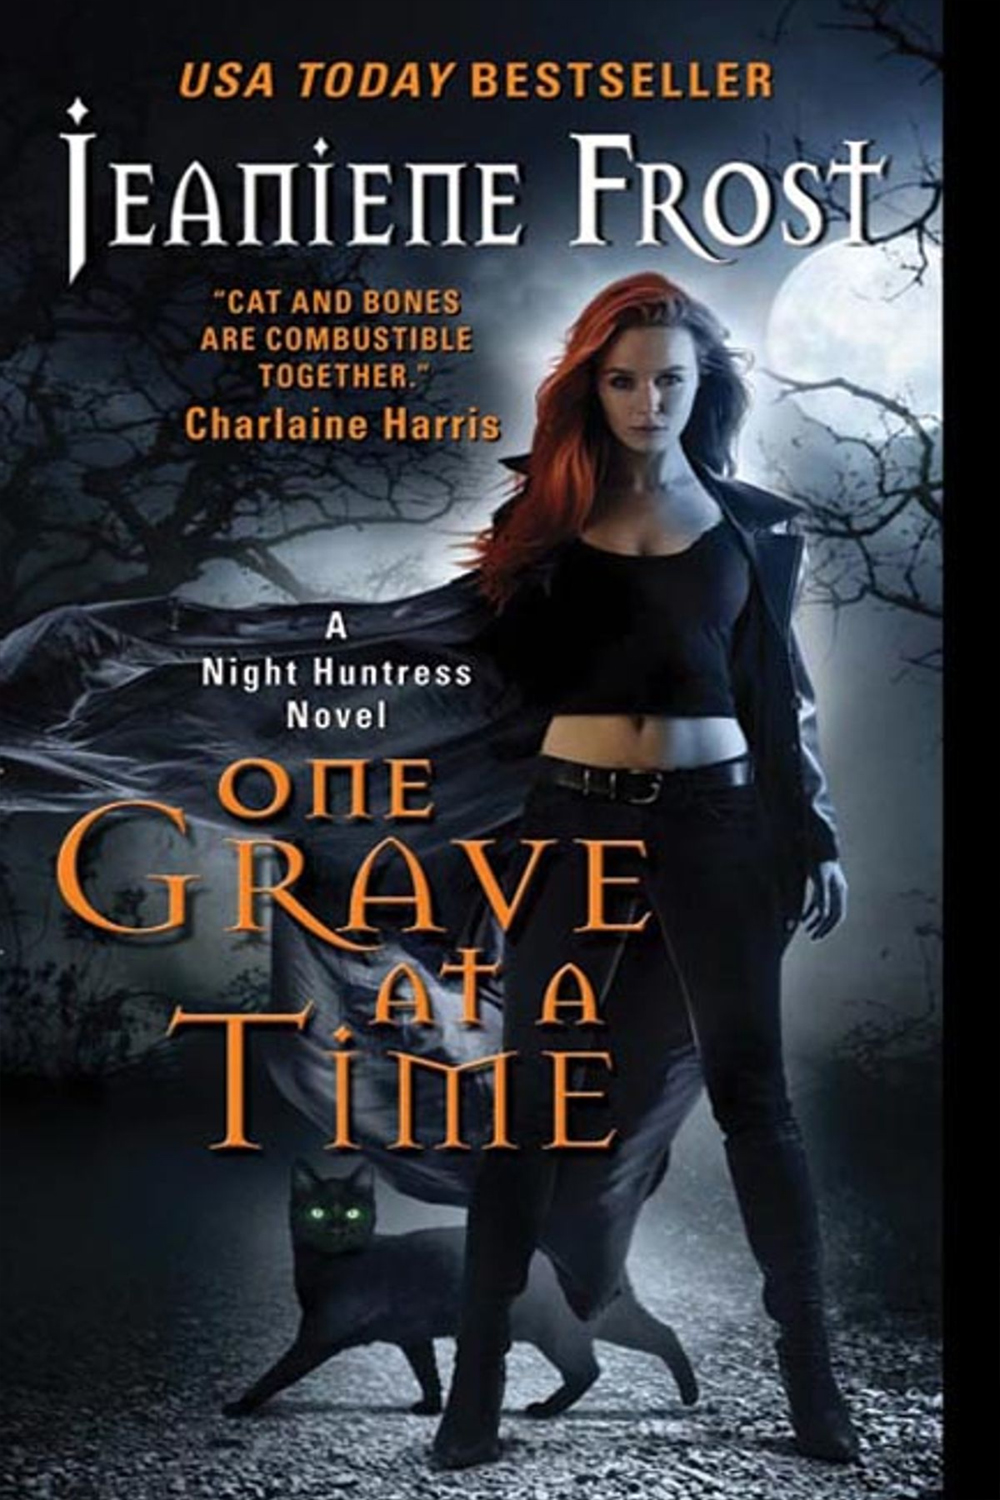 S1 E16 One Grave at a Time by Jeaniene Frost